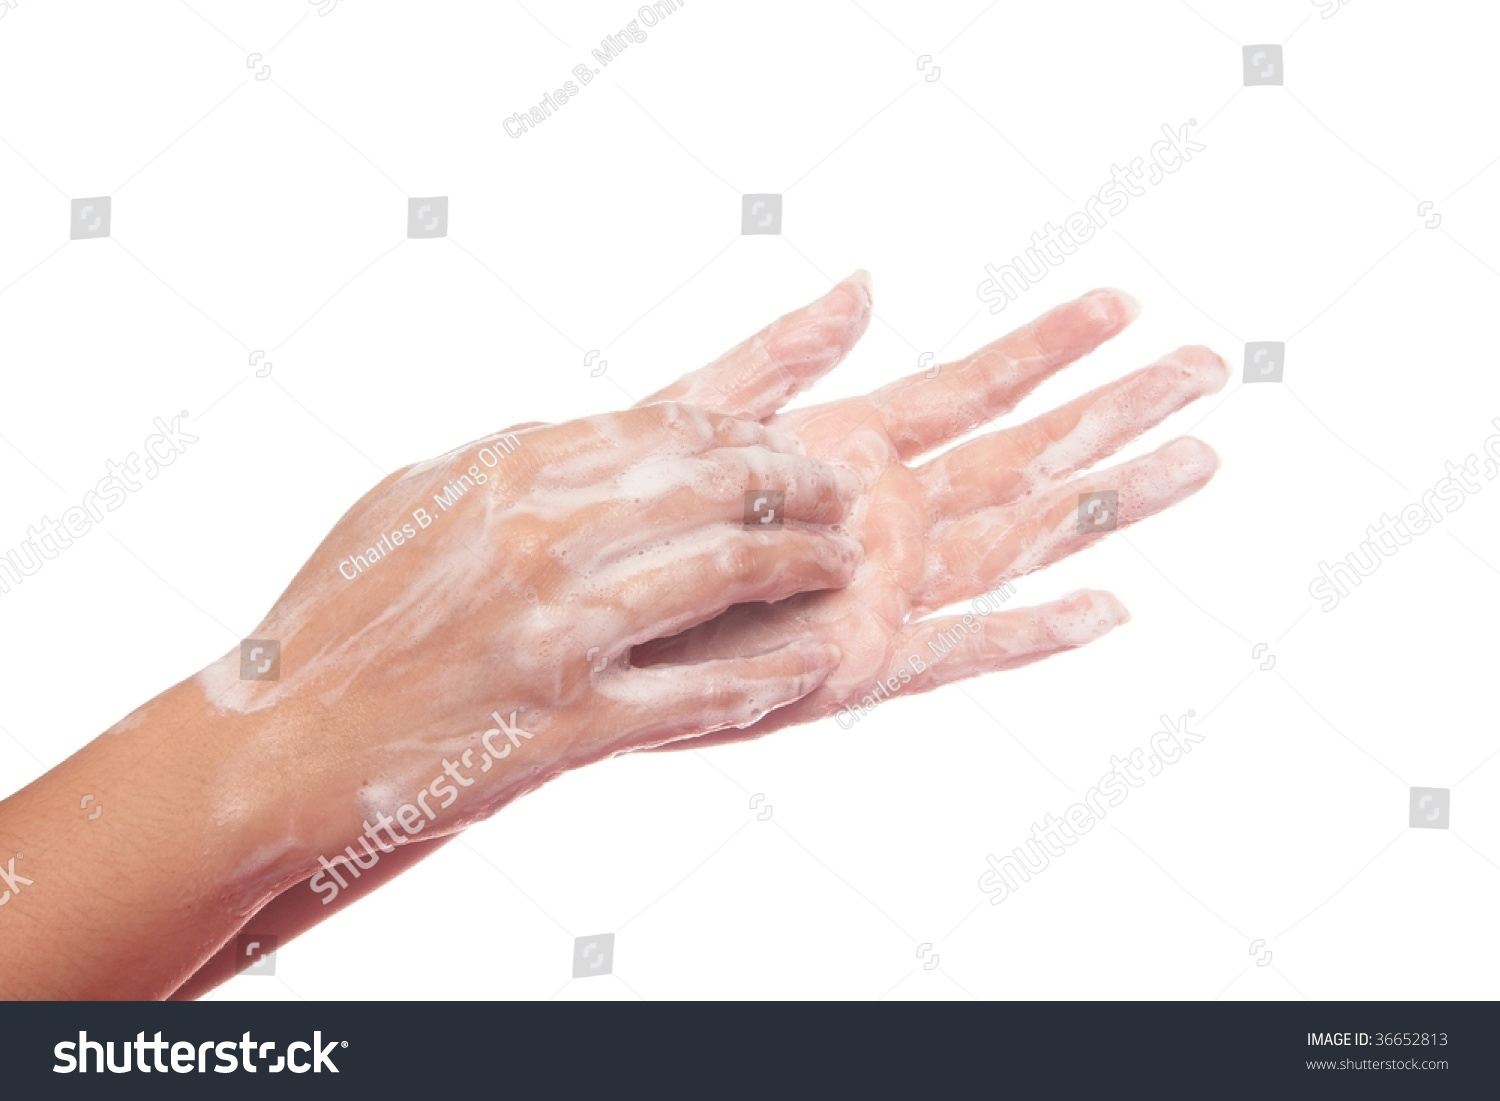 Scratching Palm Finger Nails Soap Part Stock Photo (Safe to Use ...